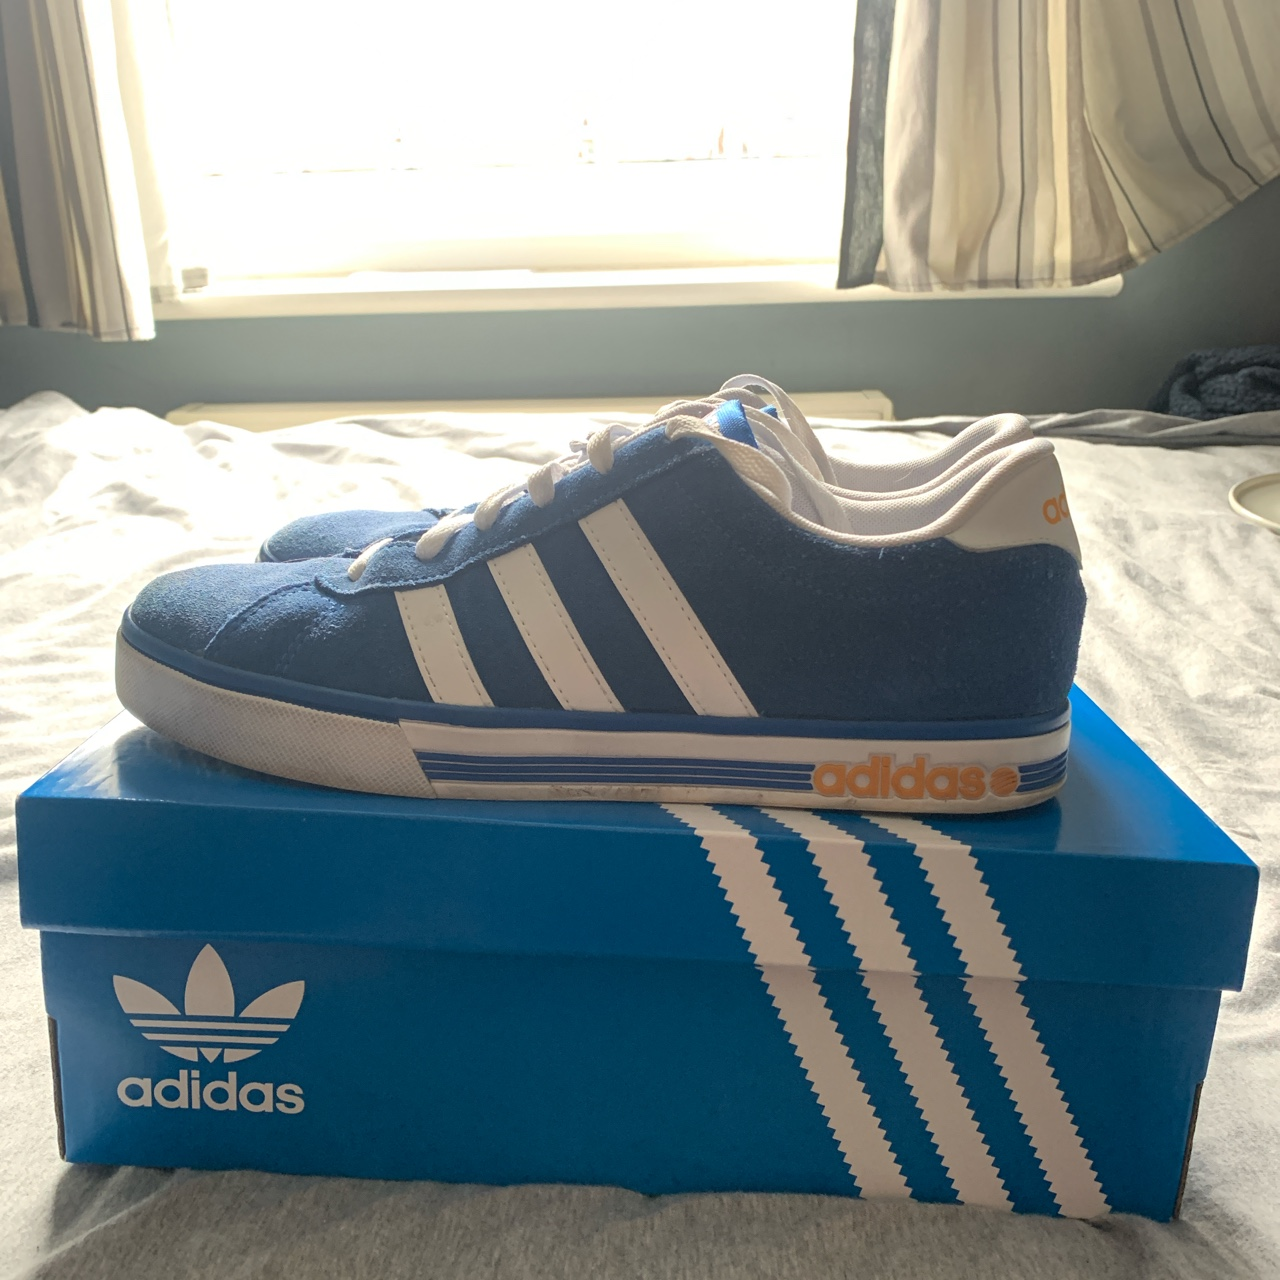 Adidas NEO Suede trainers | Blue | Size 8.5 UK |...